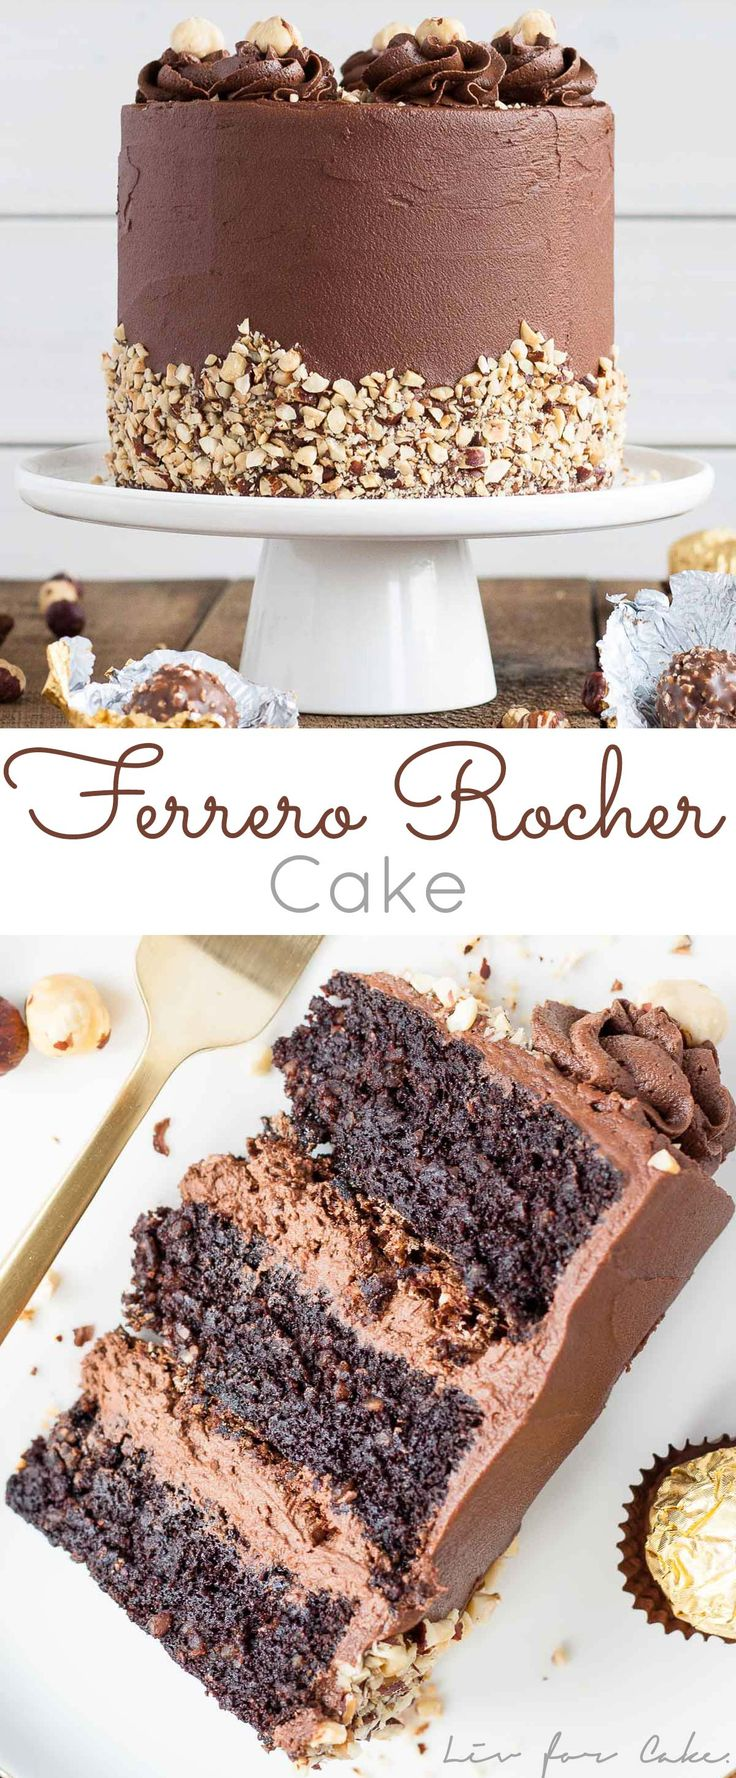 how to make ferrero rocher cake at home